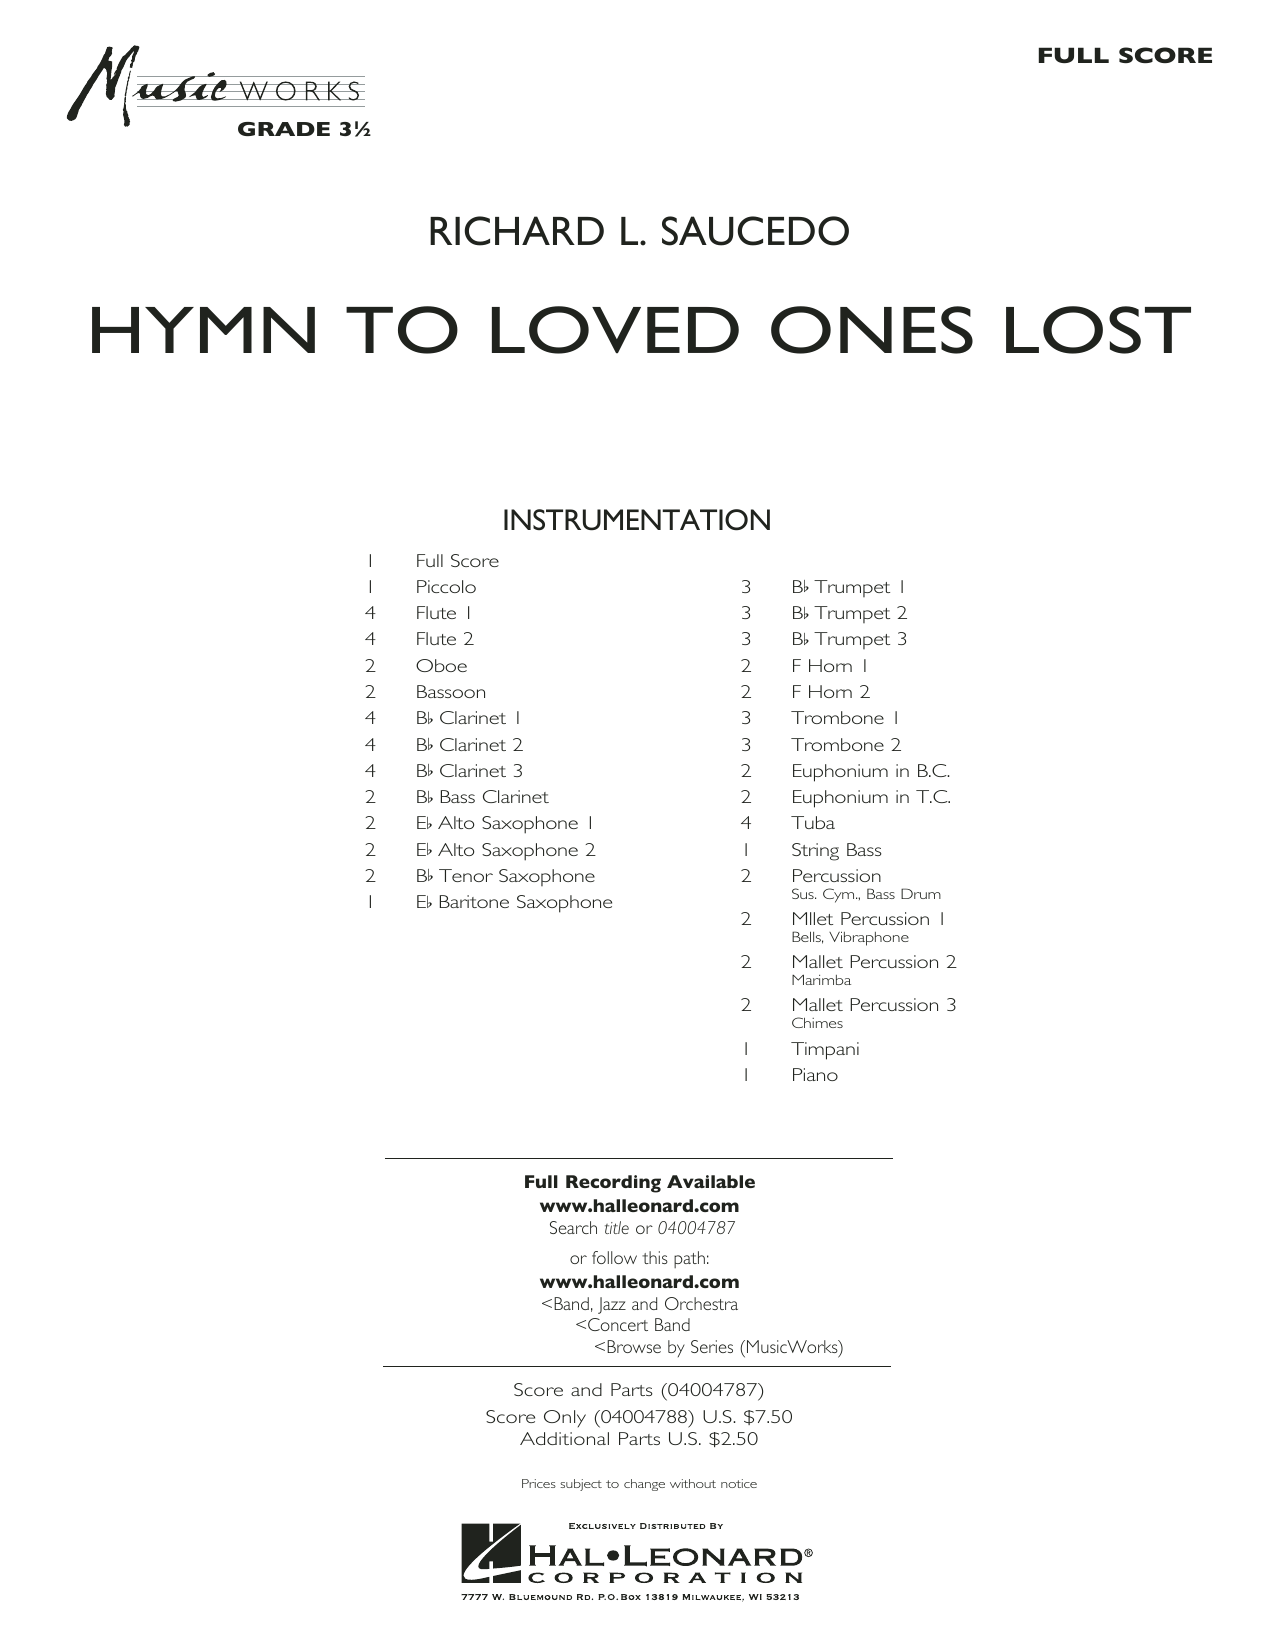 Hymn to Loved Ones Lost (COMPLETE) sheet music for concert band by Richard L. Saucedo